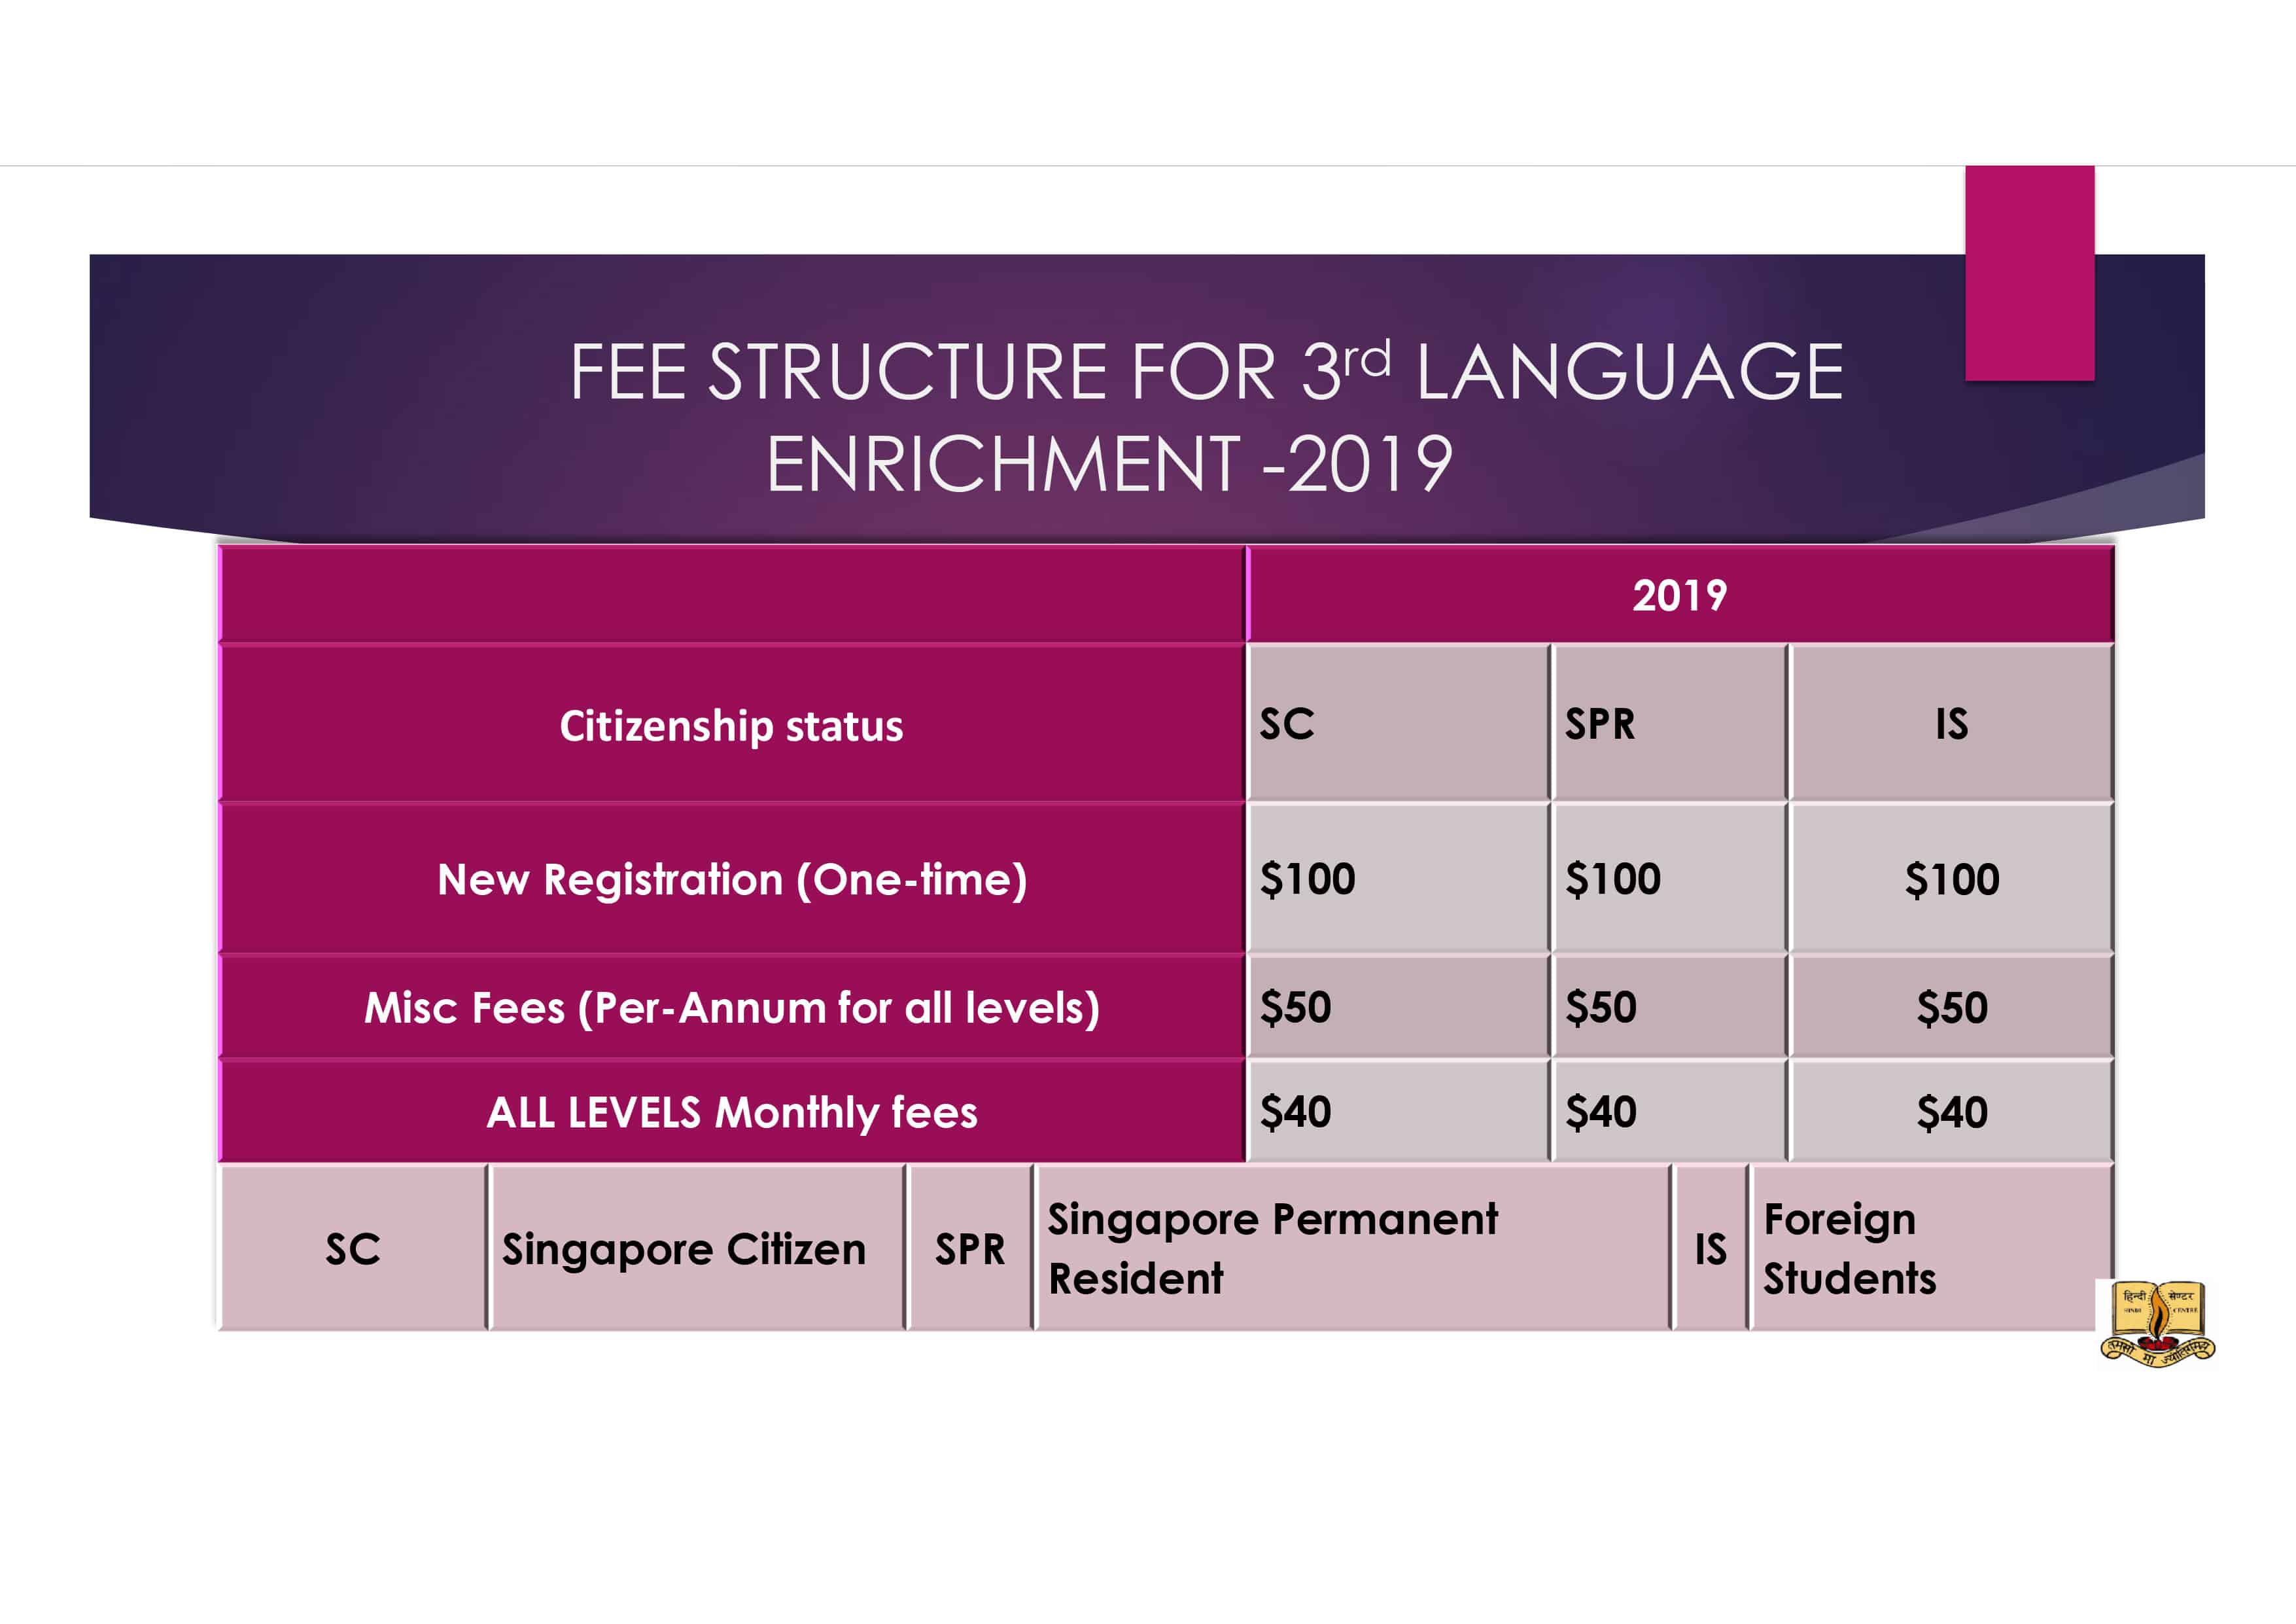 FEE-STRUCTURE-FOR-3rd~2019